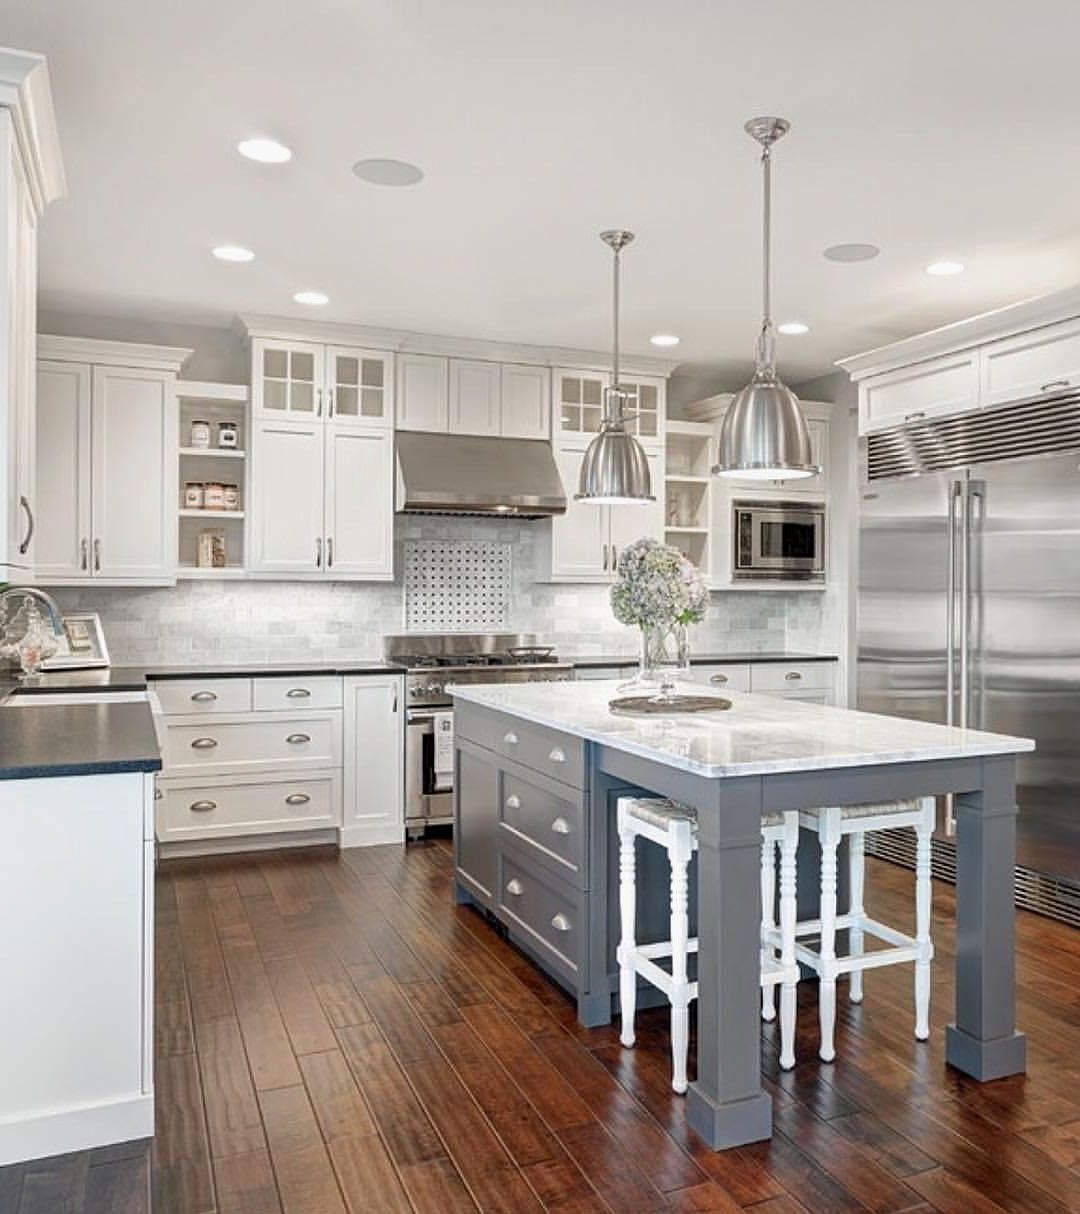 Download Wallpaper Kitchen With White Cabinets And Colored Island